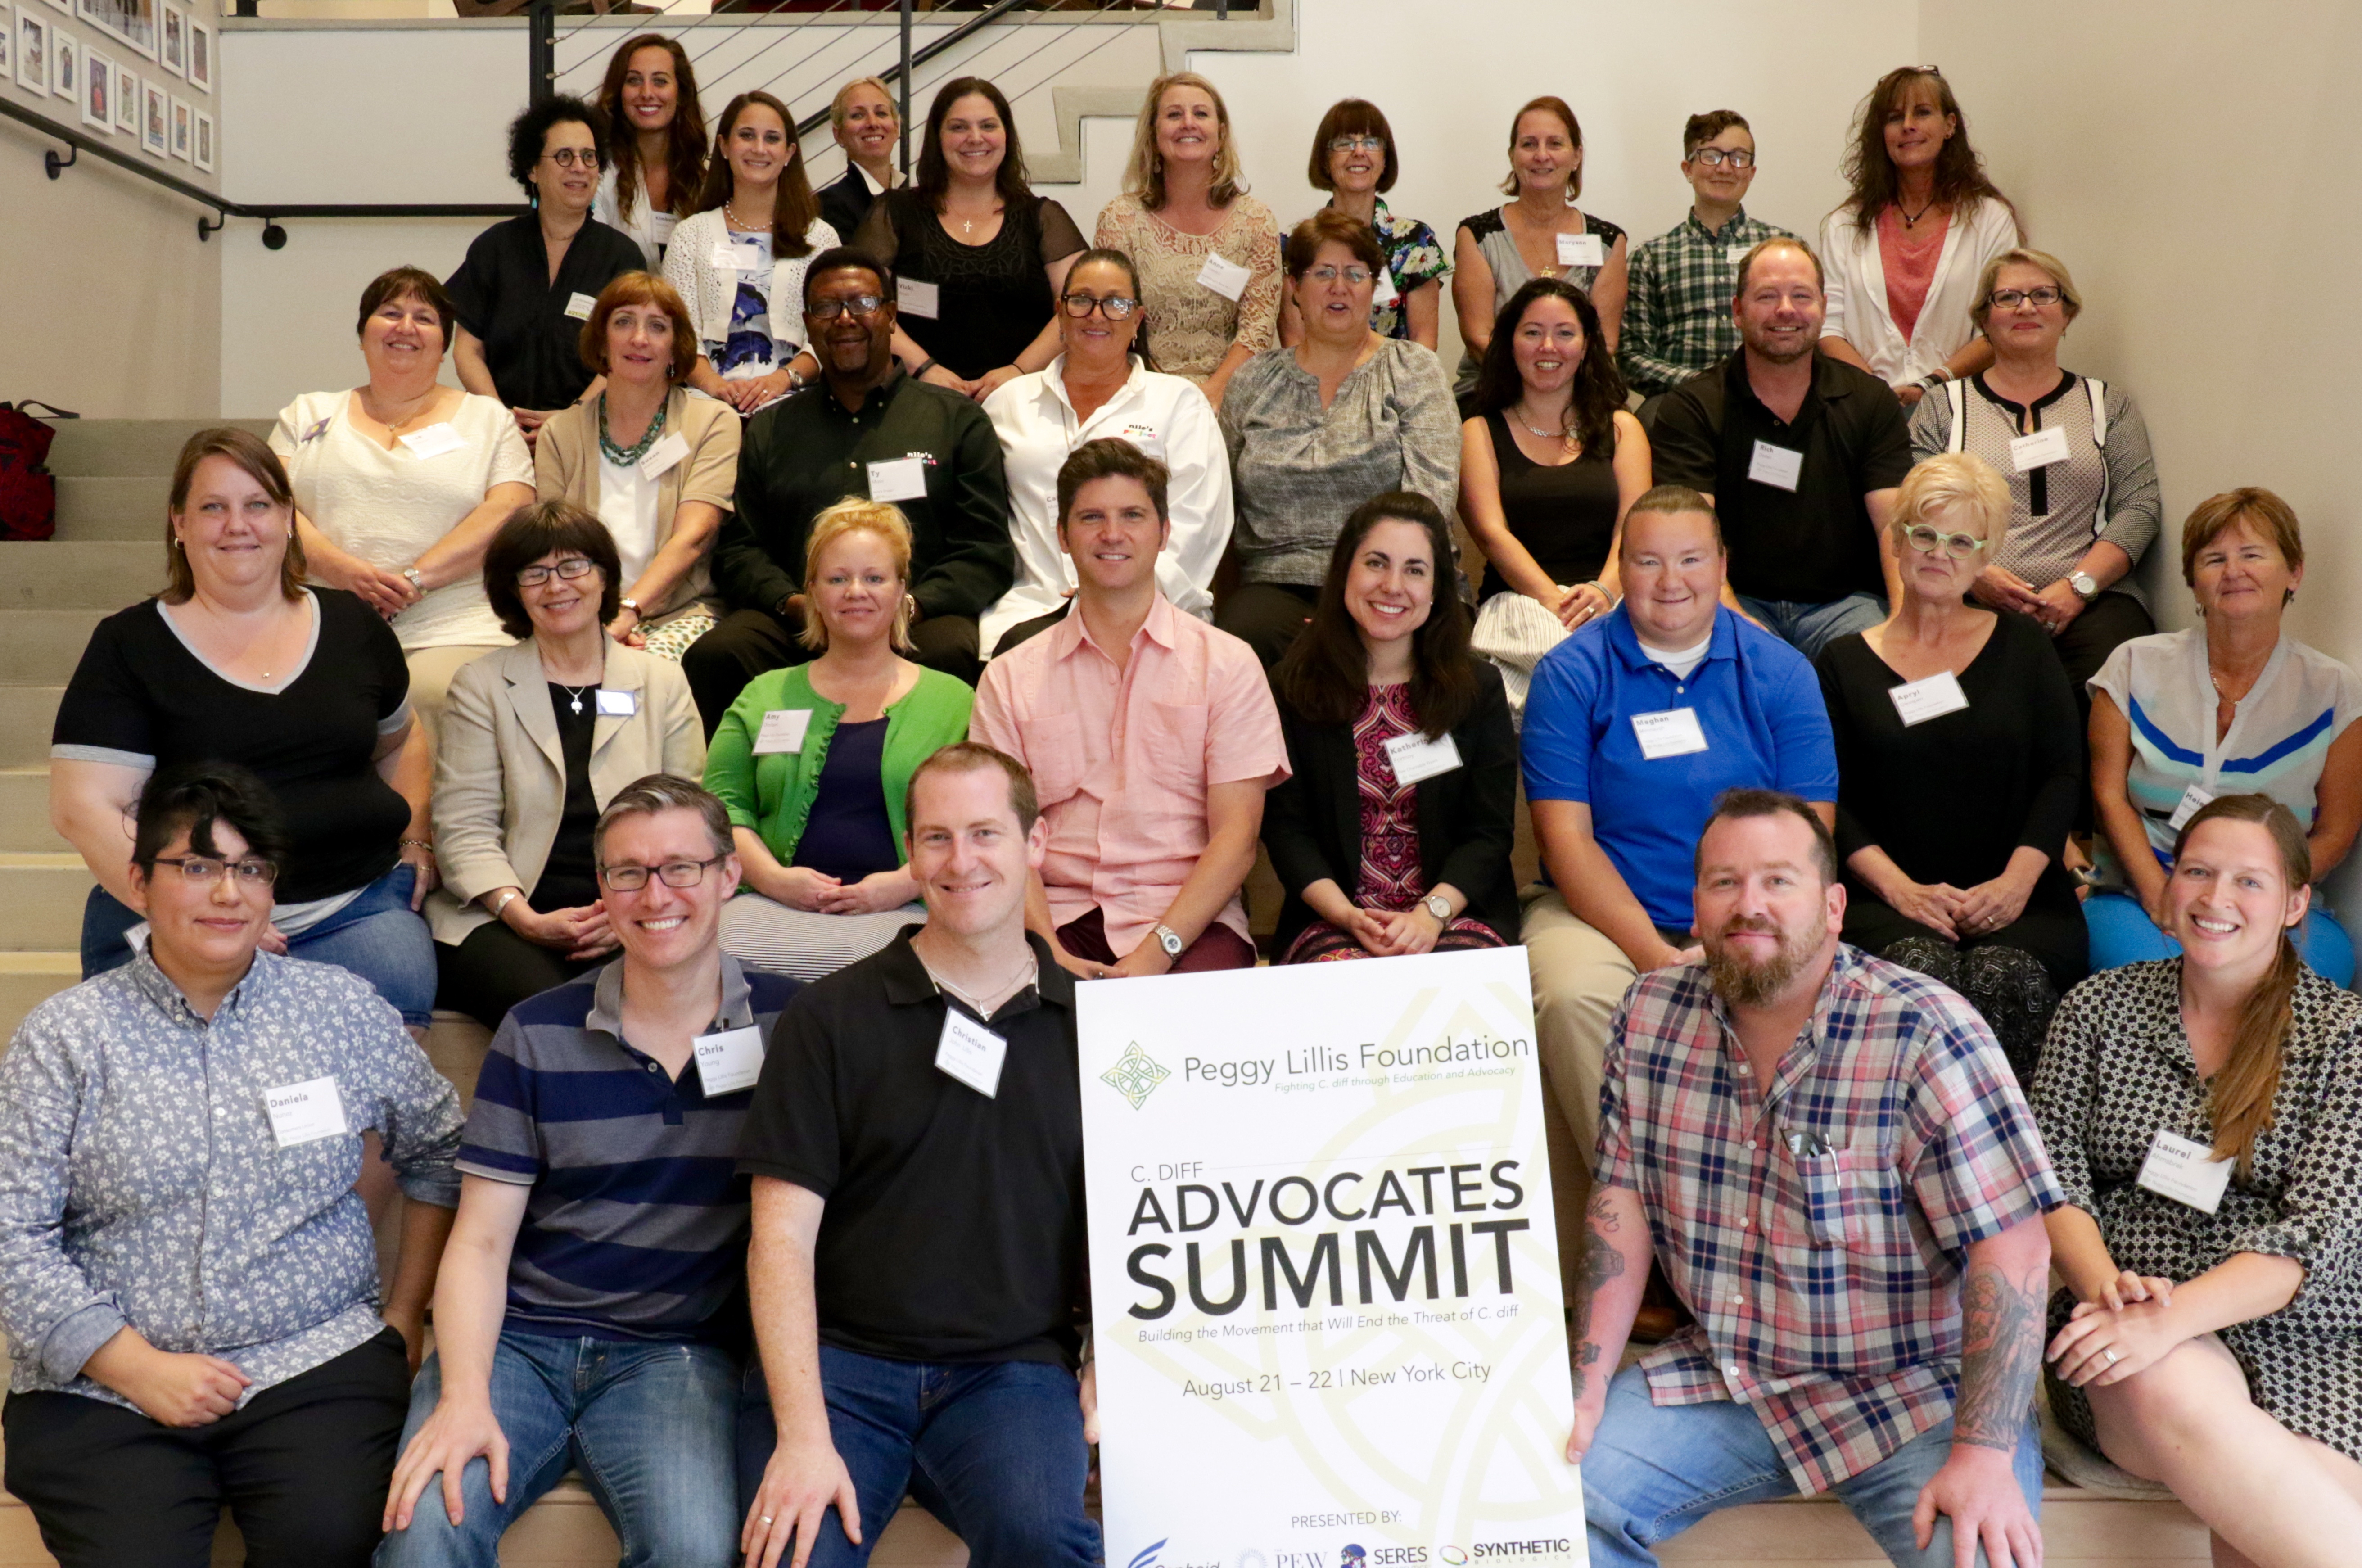 C. diff Advocates Summit Group